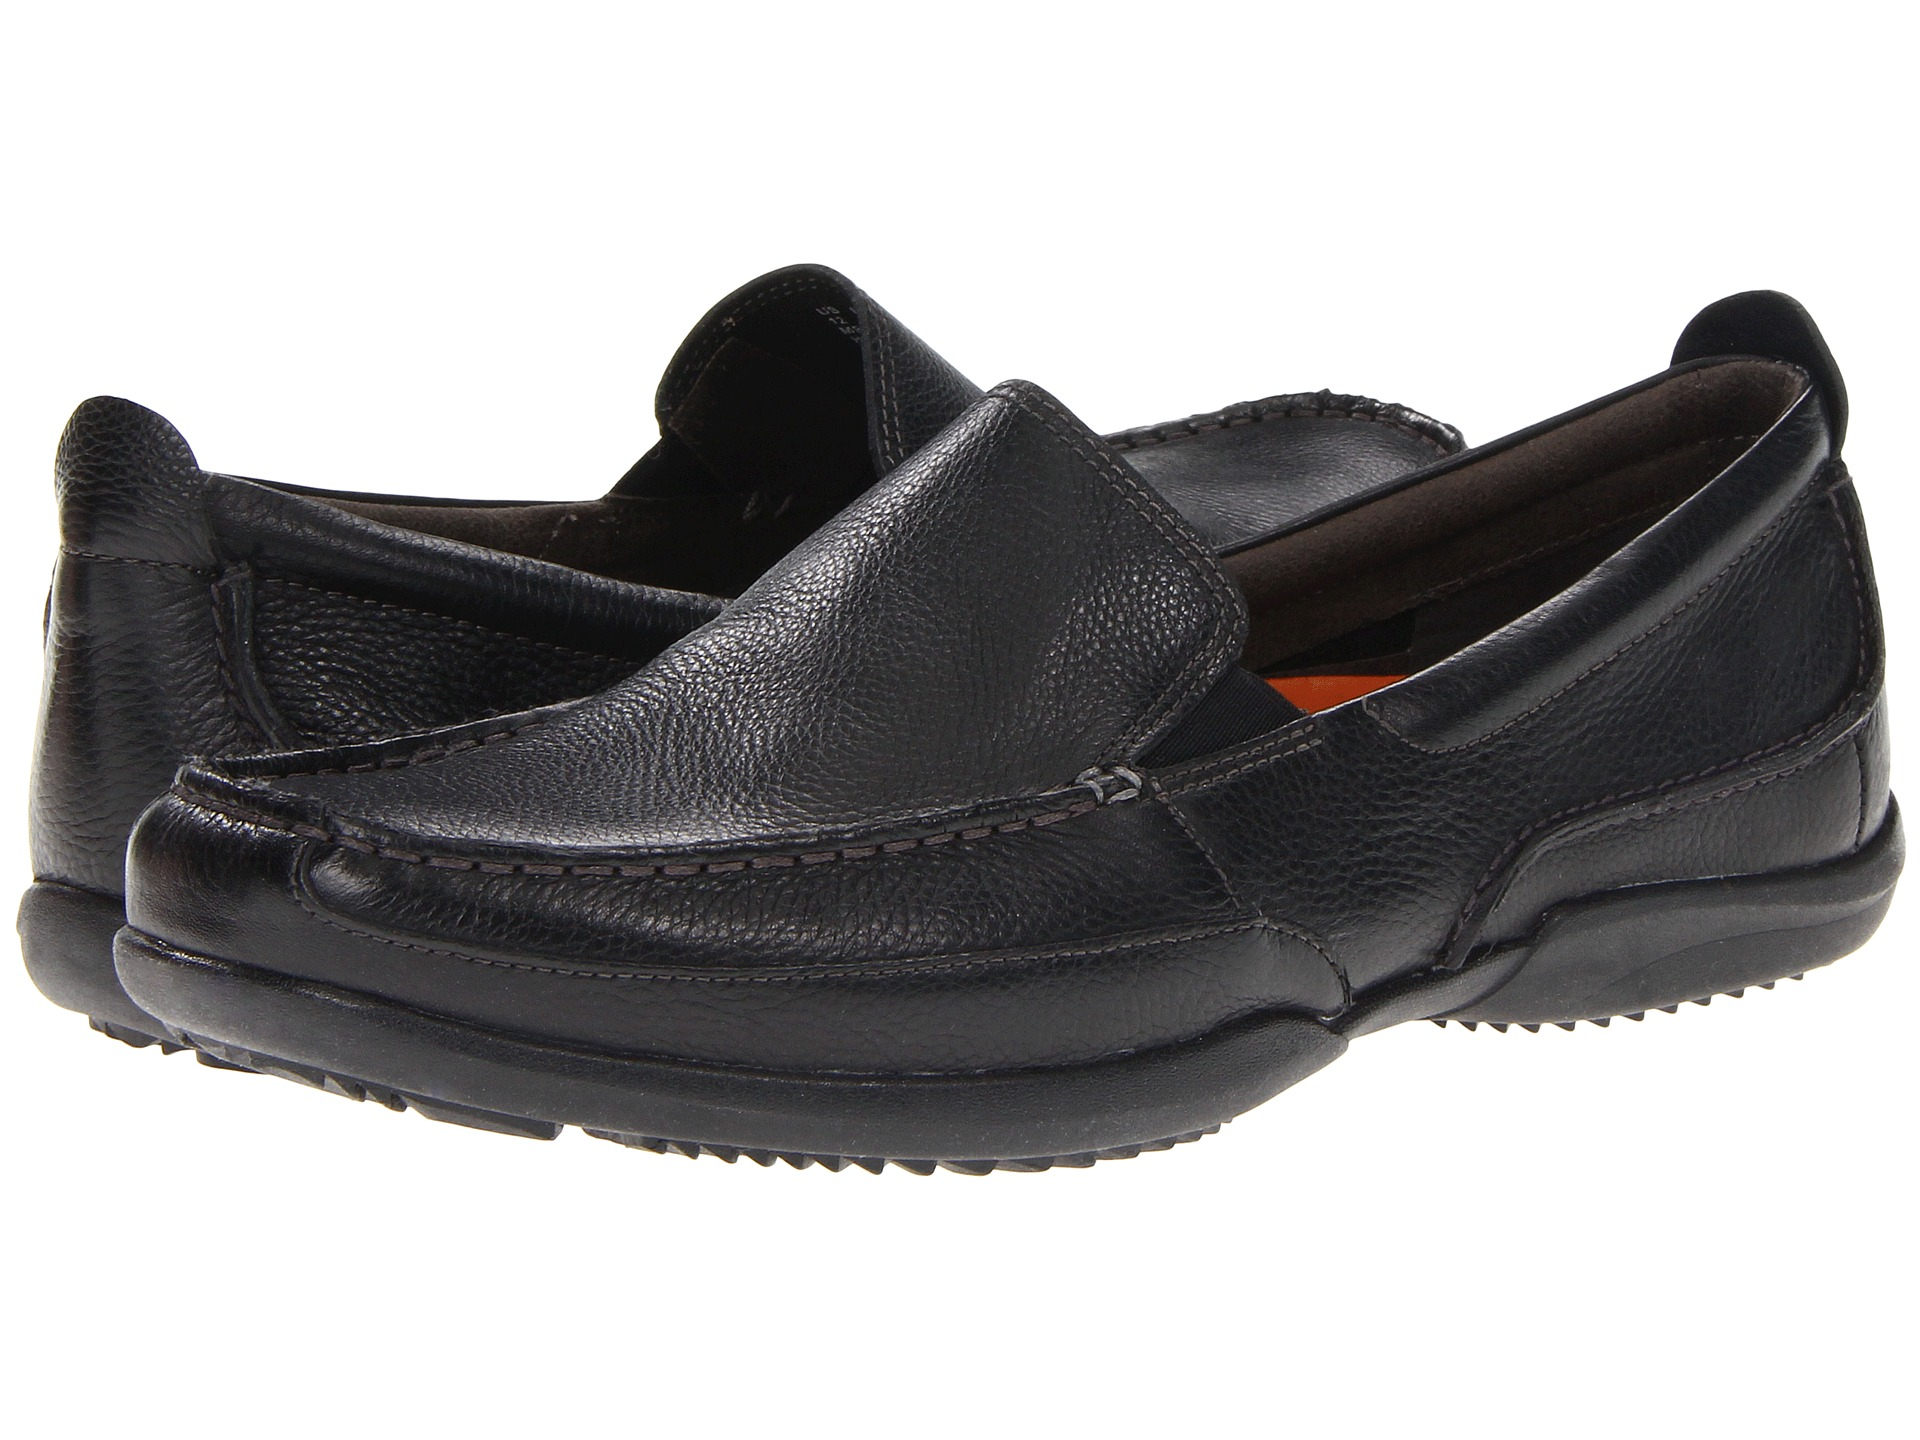 Hush Puppies Black Moccasins release dates authentic where to buy cheap real q3Dq9Nc